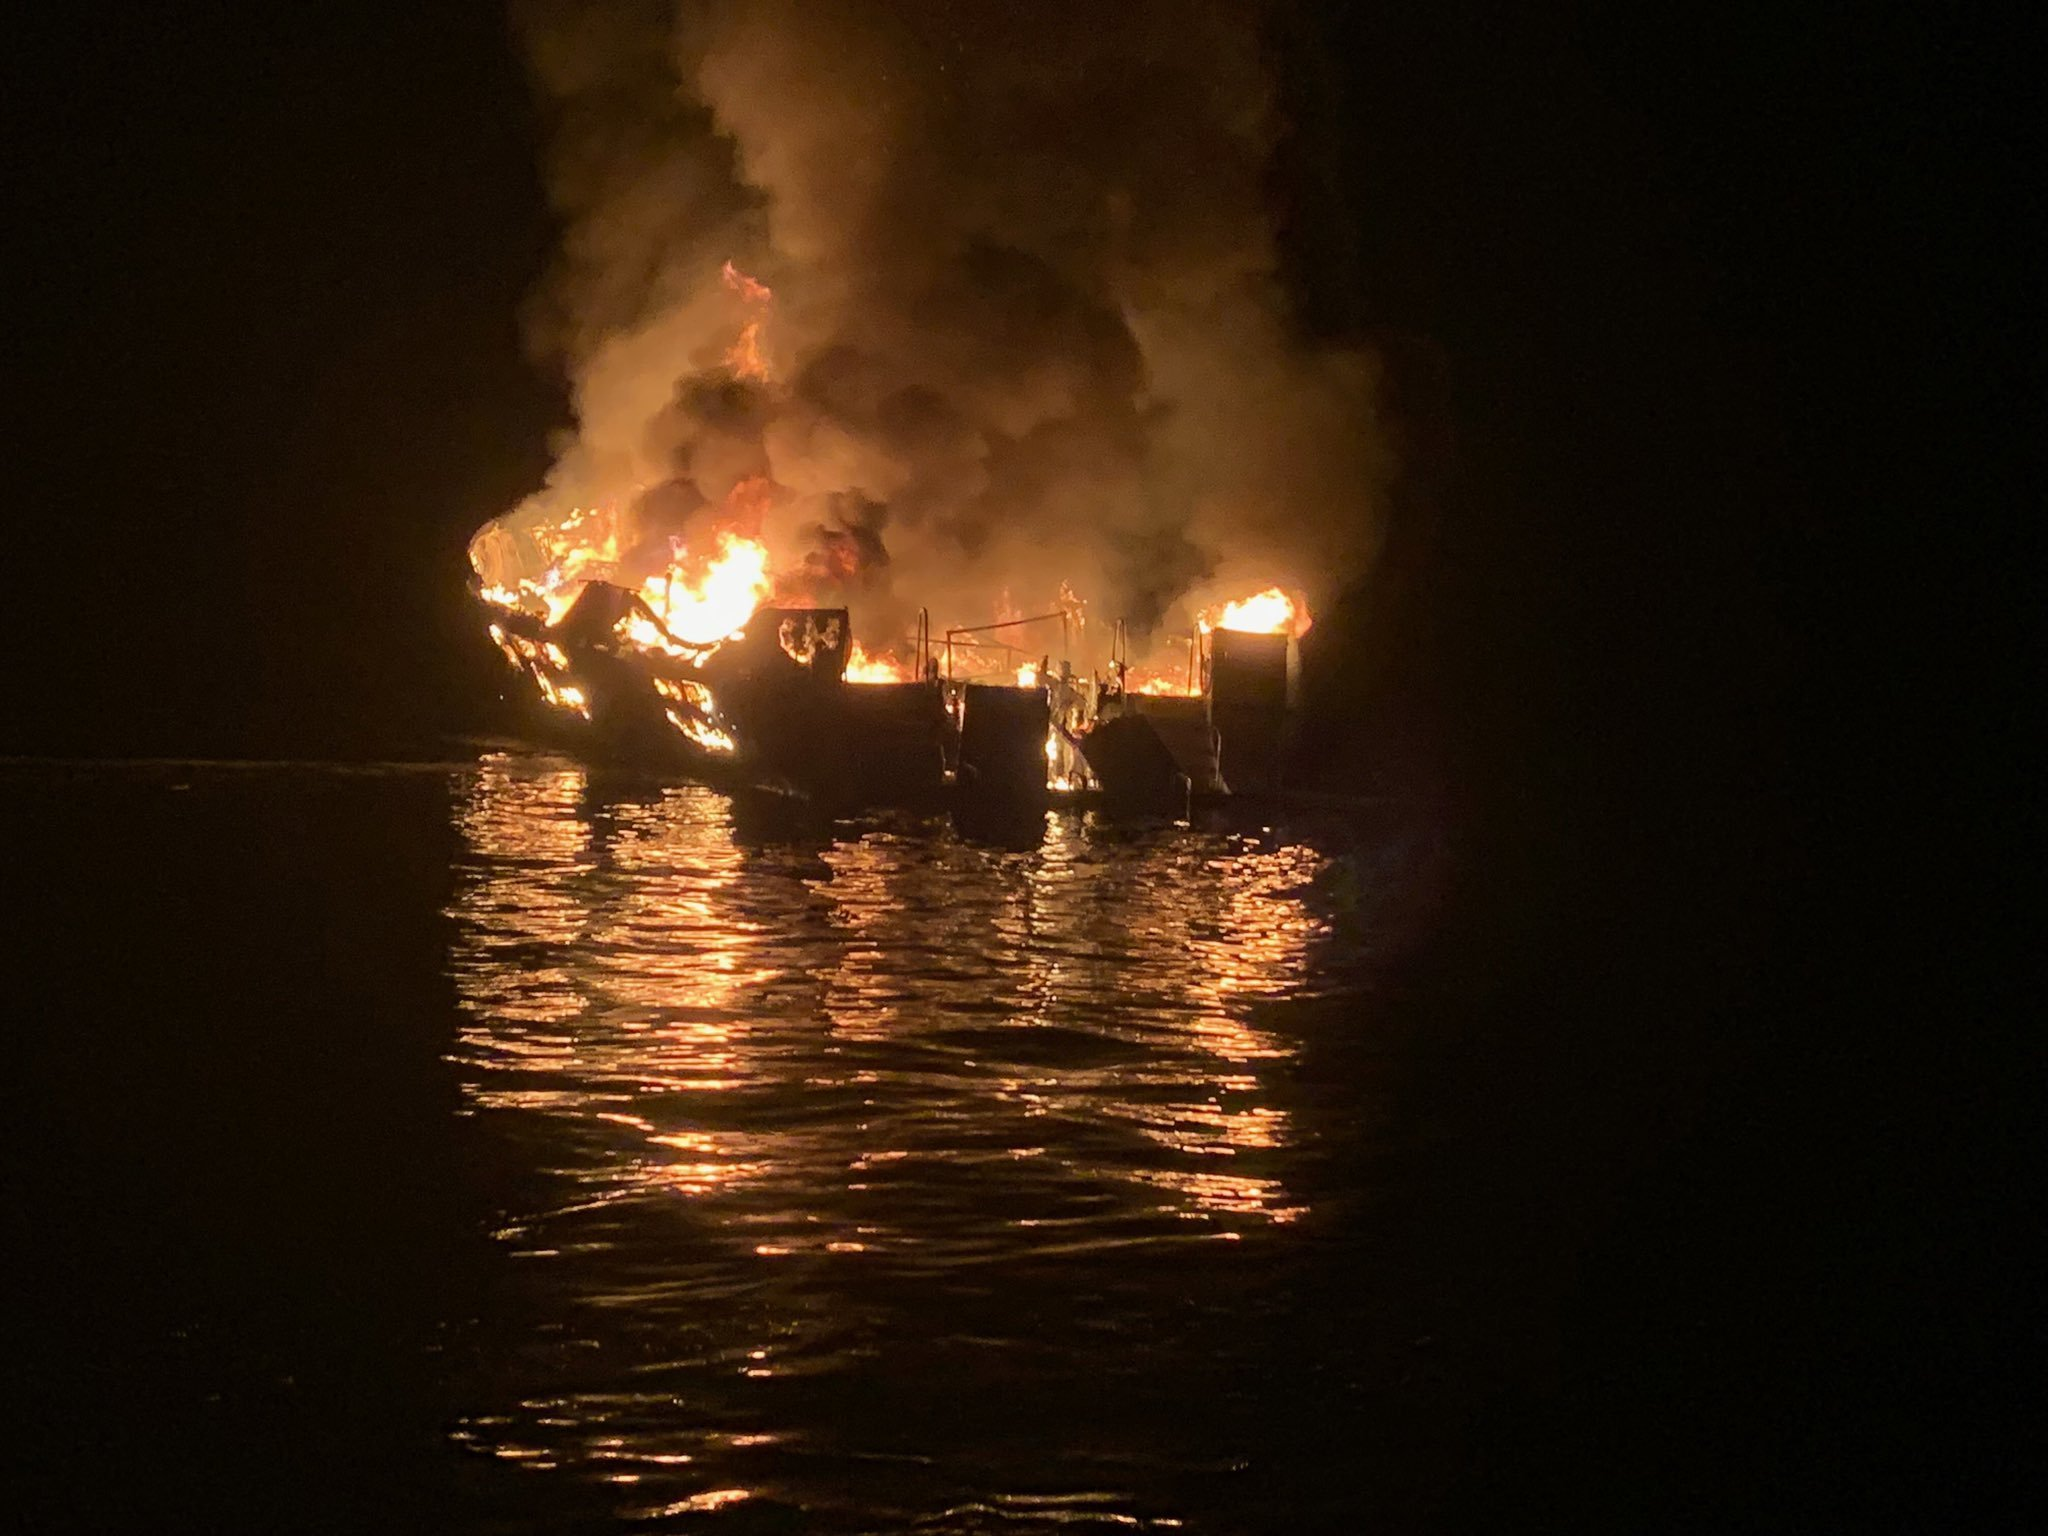 A crew member who survived the fiery California dive boat fire claims the staff were not properly trained